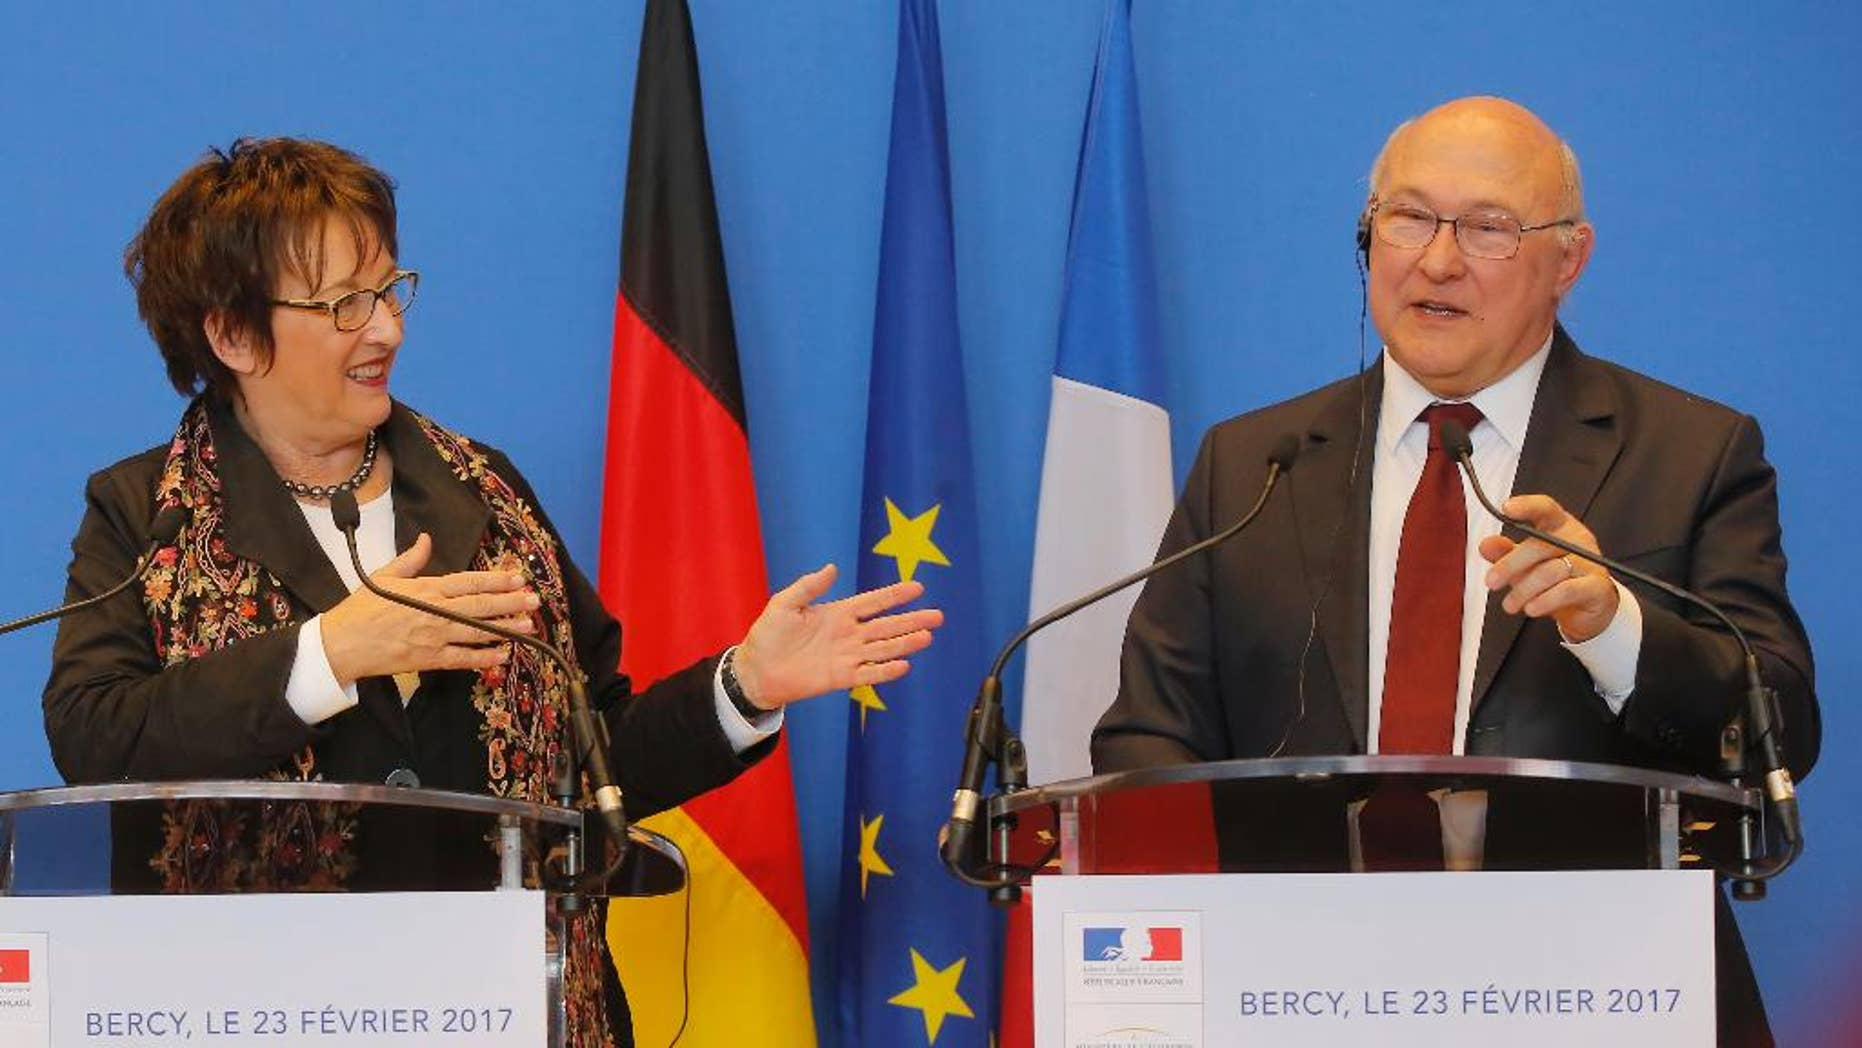 Germany's Economic Affaire and Energy Minister Brigitte Zypries, left, and France's Finance Minister Michel Sapin attend a media conference at the ministry in Paris, Thursday, Feb. 23, 2017. France's Finance Minister Michel Sapin and his Germany's Economy Affair and Energy Minister Brigitte Zypries discussed during their meeting the future of General Motors' Opel subsidiary. (AP Photo/Michel Euler)